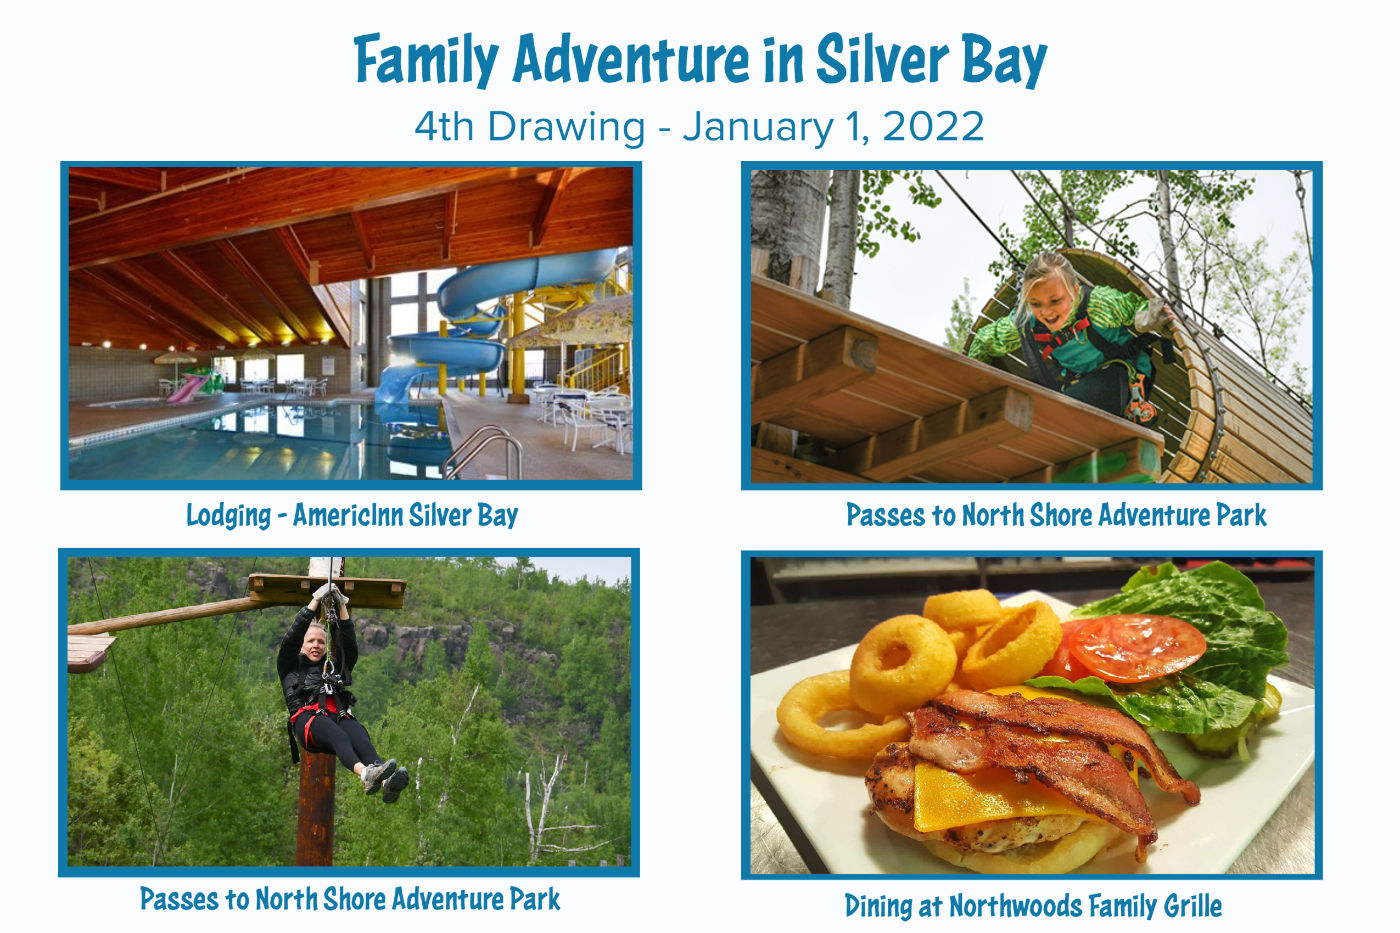 Family Adventure in Silver Bay. 4th Drawing - January 1, 2022. Lodging - AmericInn Silver Bay. Passes to North Shore Adventure Park. Dining at Northwoods Family Grille.